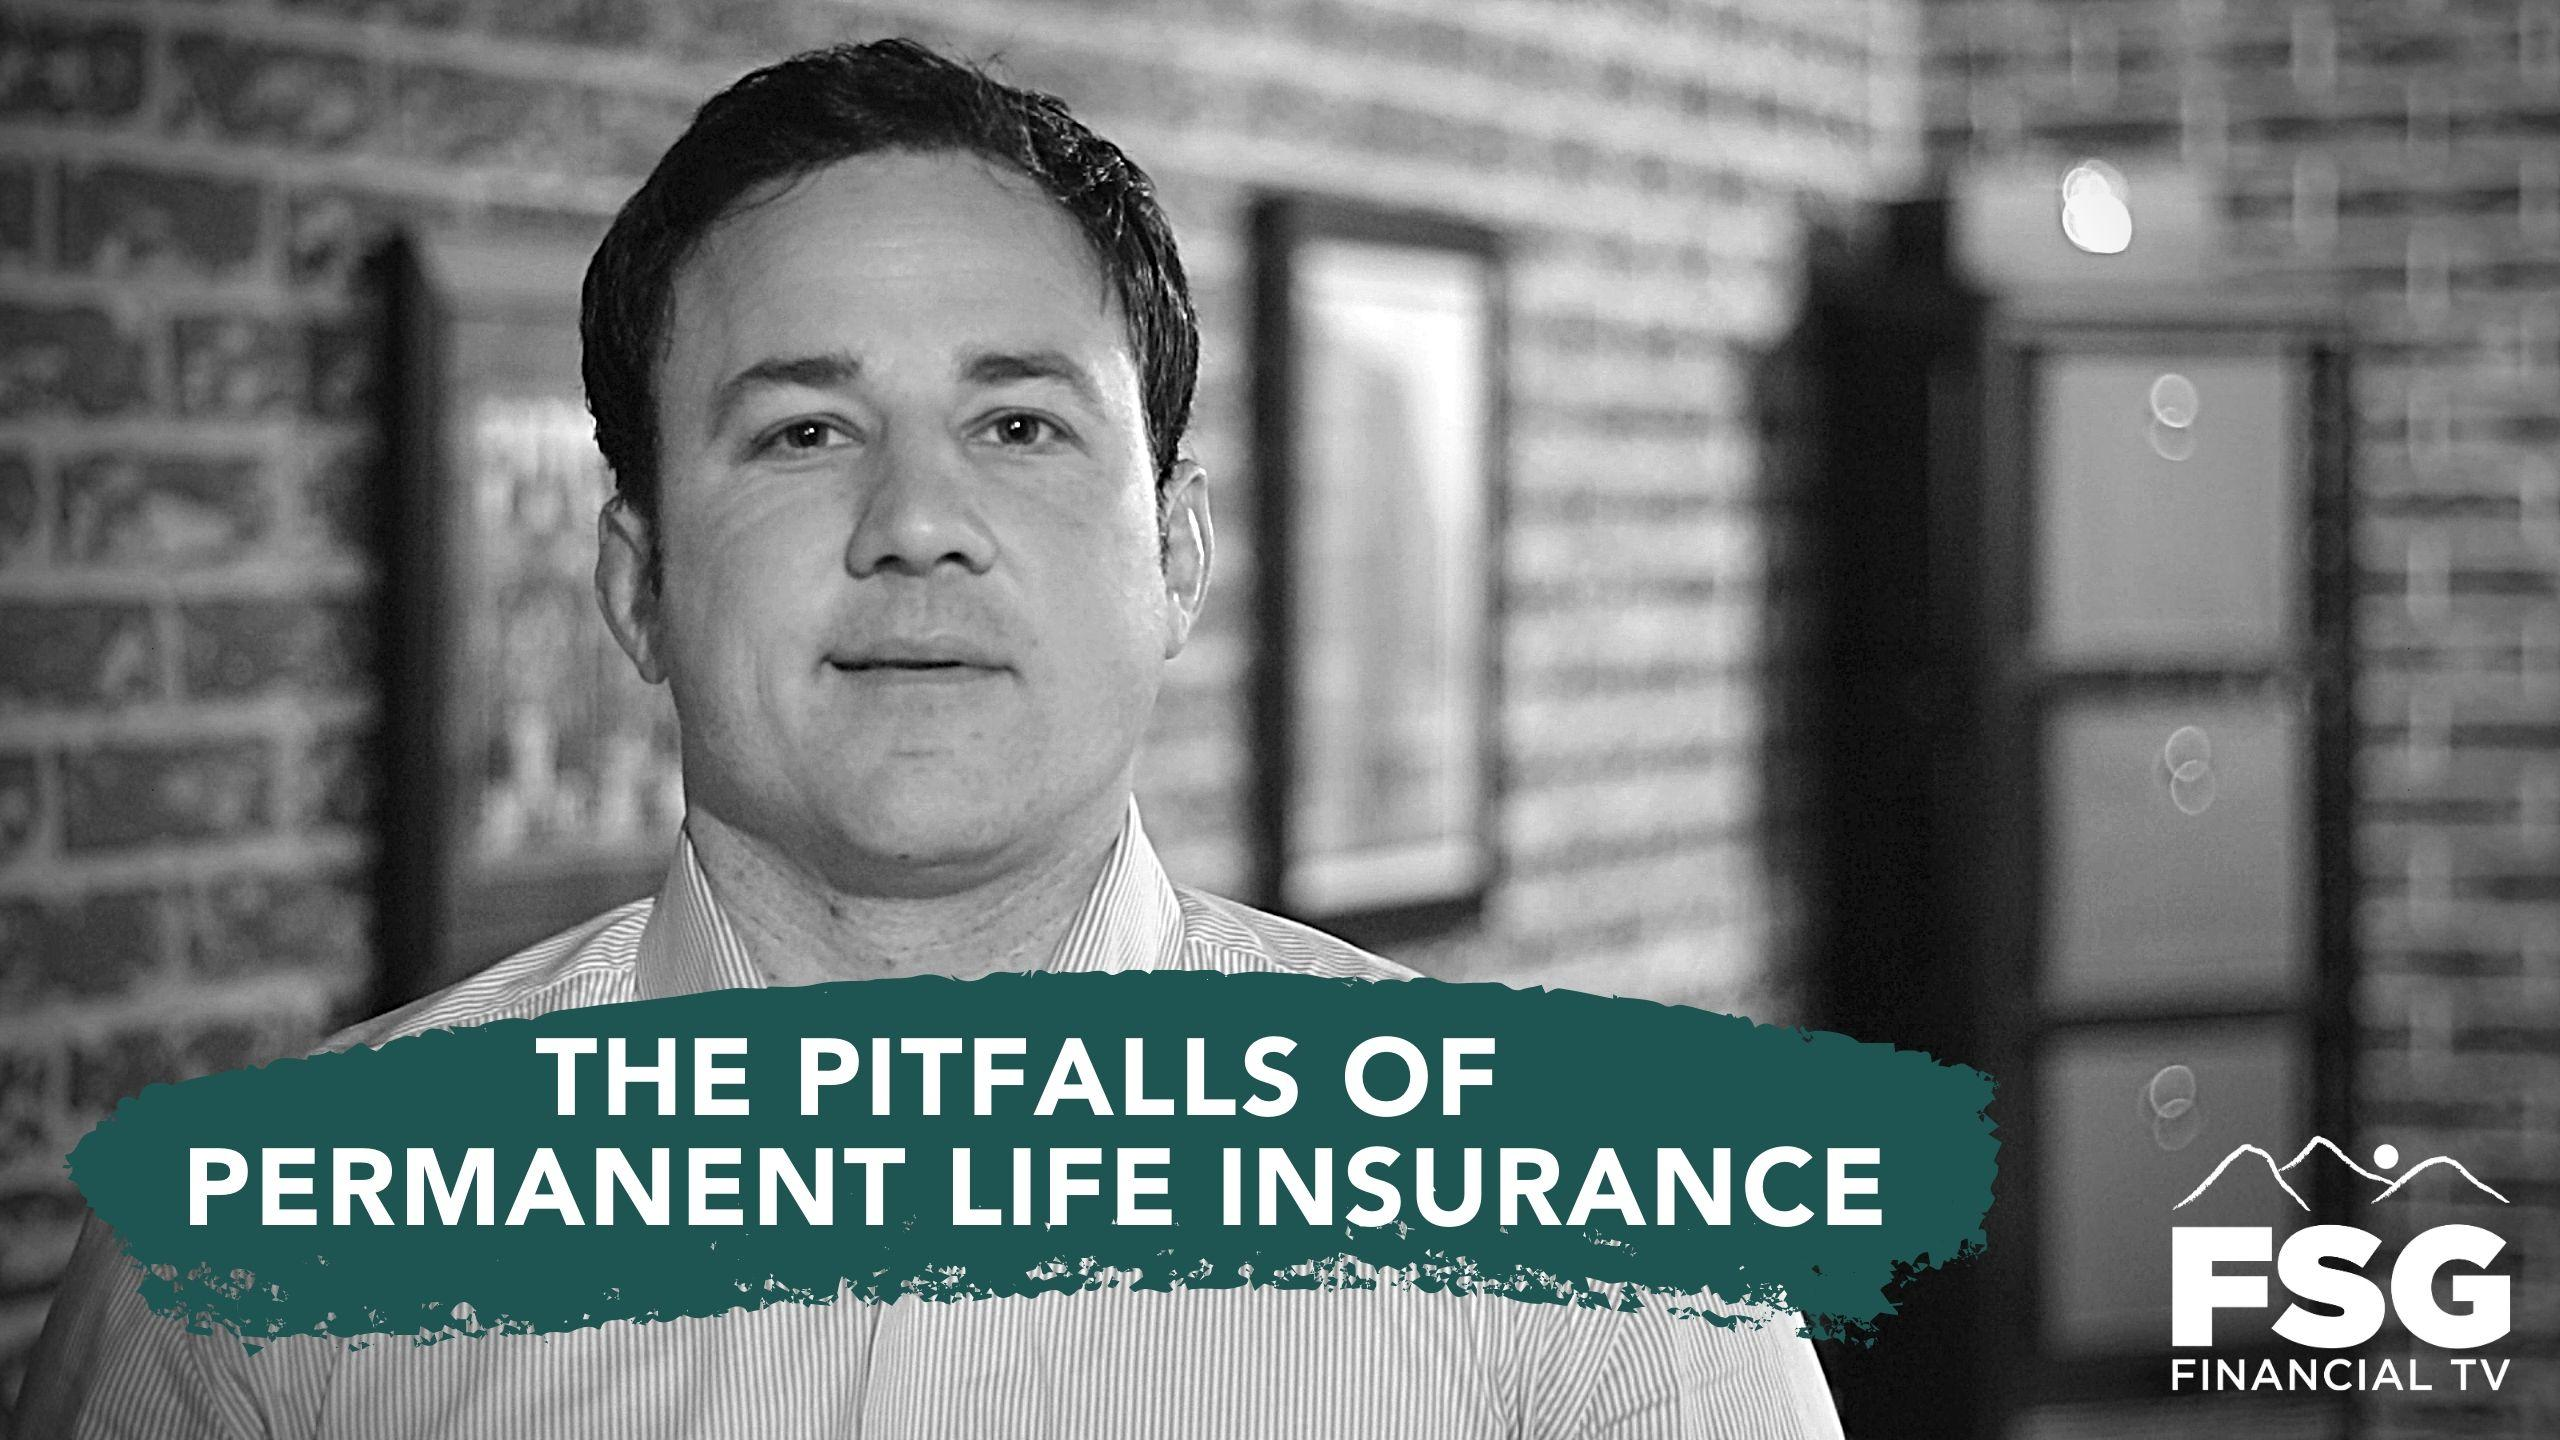 Educational Moment: The Pitfalls of Permanent Life Insurance Thumbnail